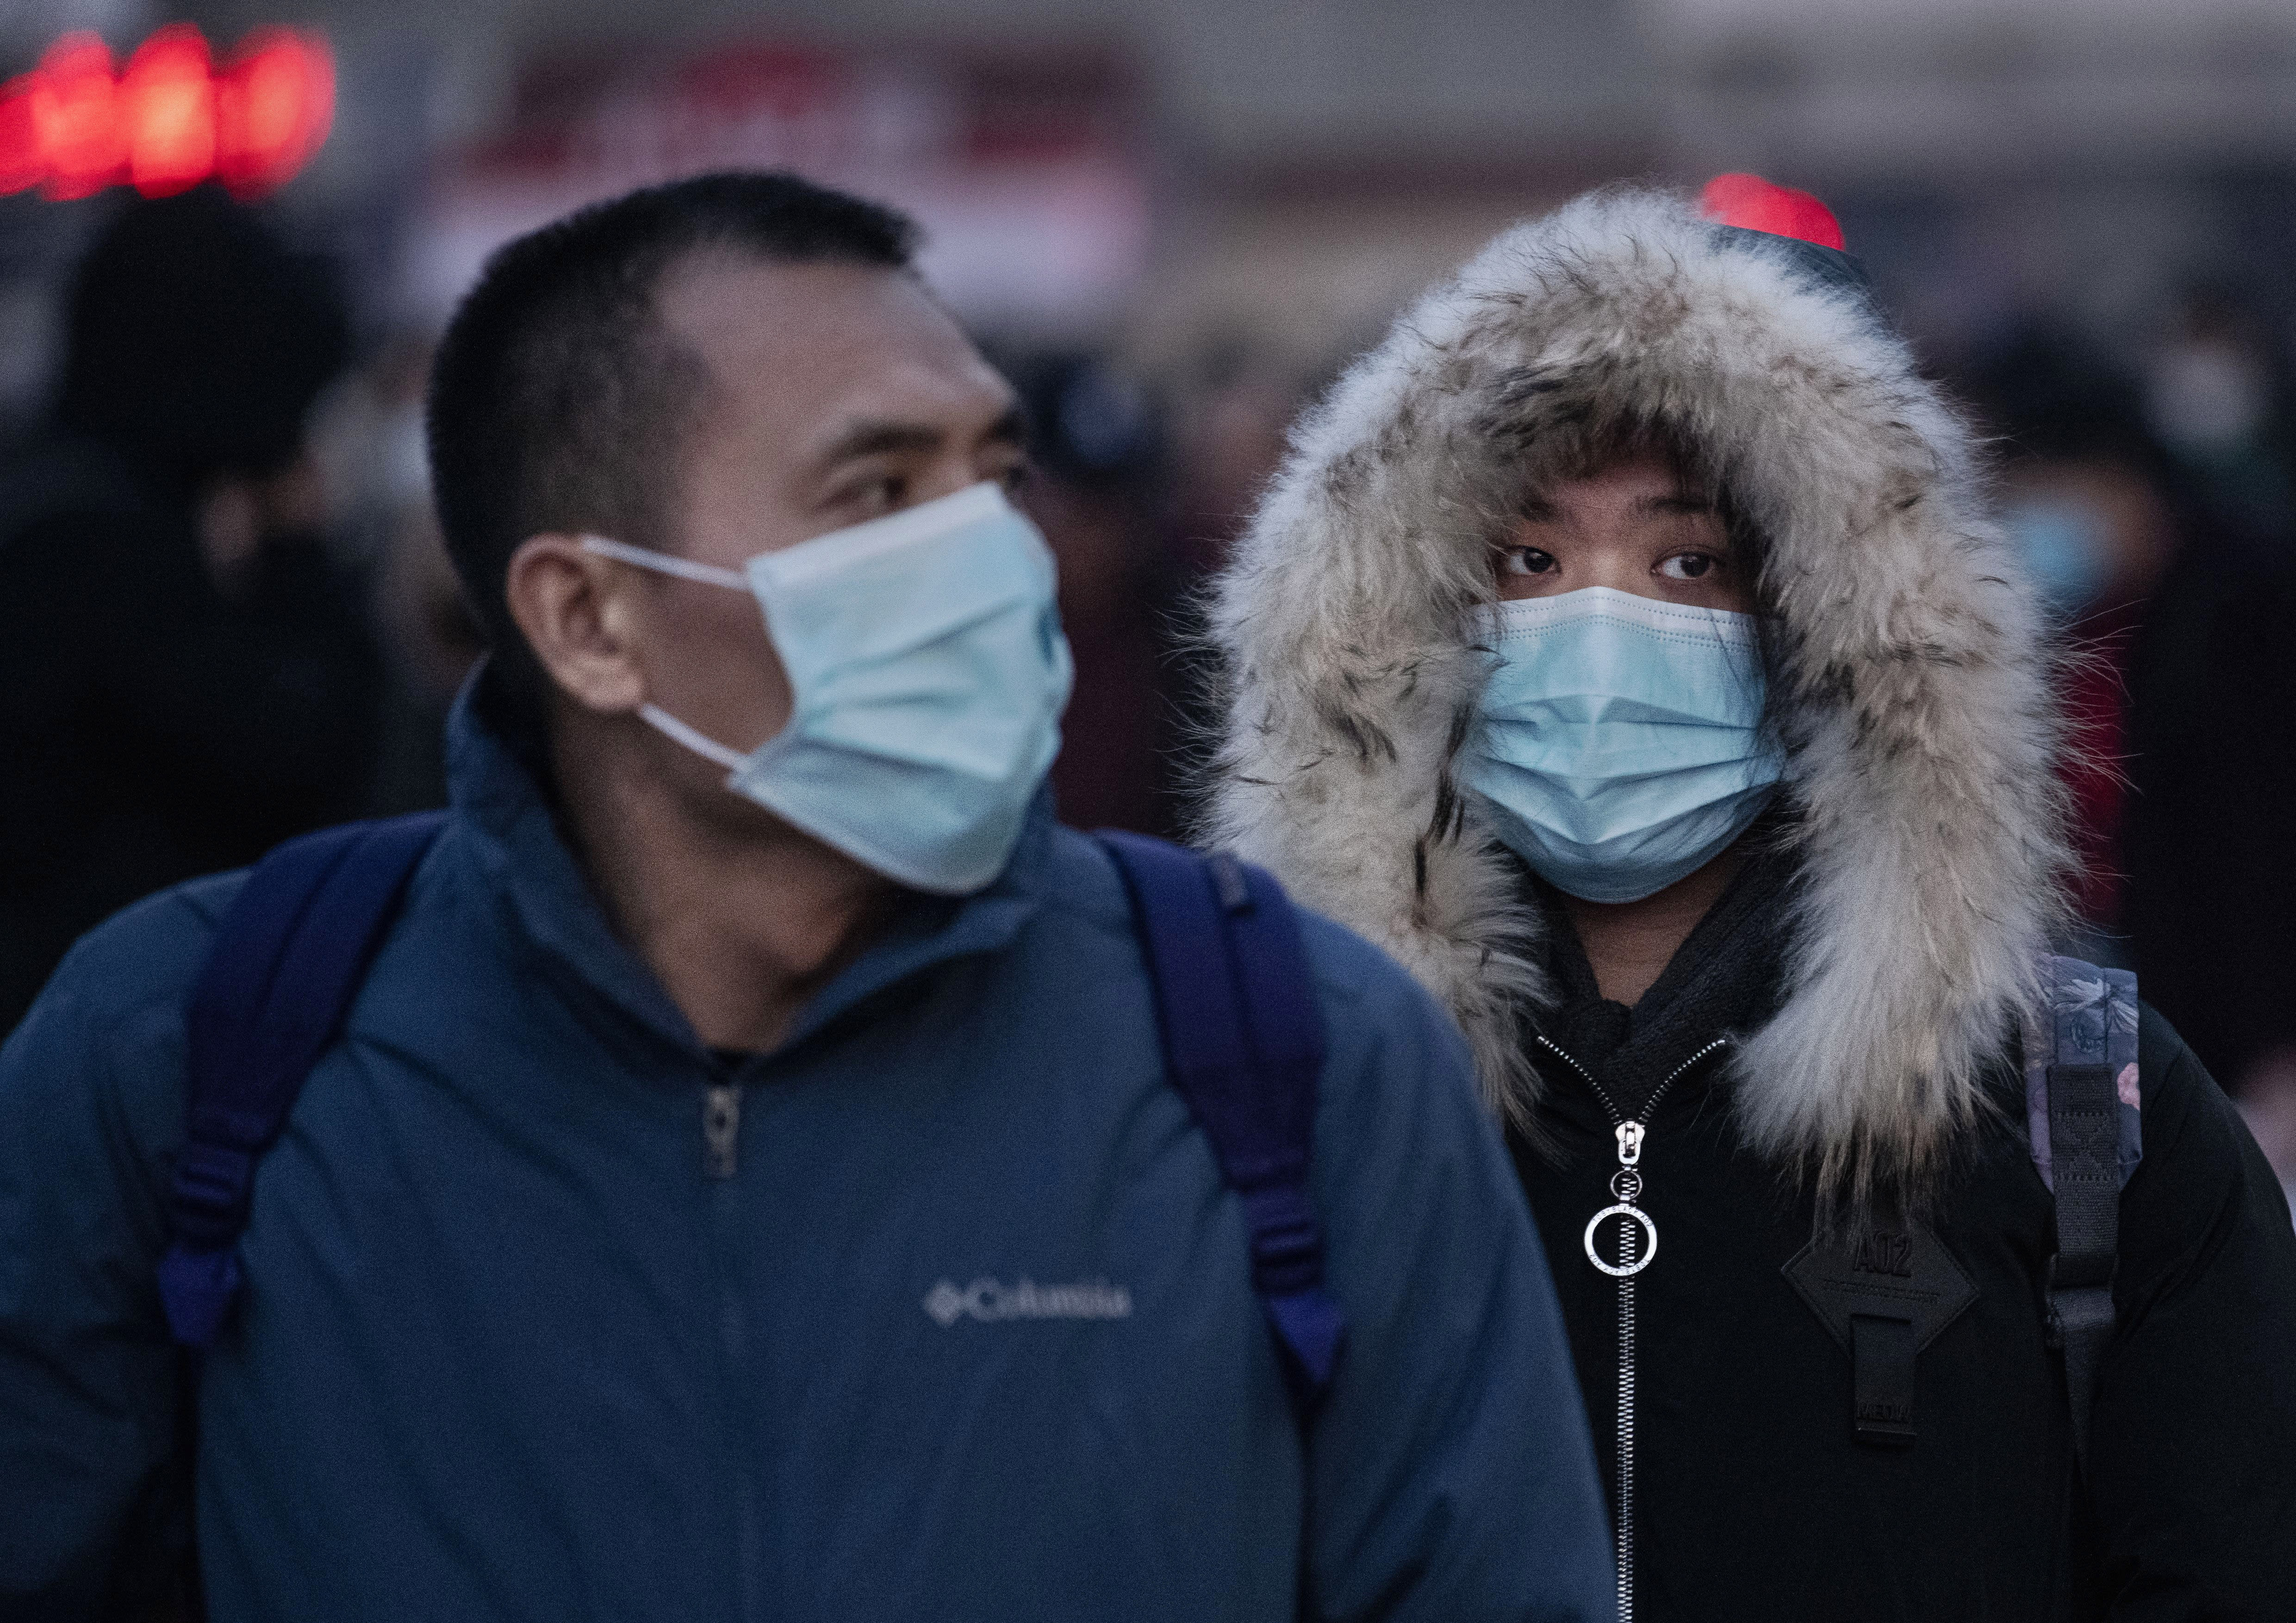 BEIJING, CHINA - JANUARY 21: Chinese travellers wear protective masks as they arrive to board trains at Beijing Railway station before the annual Spring Festival on January 21, 2020 in Beijing, China. The number of cases of a deadly new coronavirus rose to nearly 300 in mainland China Tuesday as health officials stepped up efforts to contain the spread of the pneumonia-like disease which medicals experts confirmed can be passed from human to human. The number of those who have died from the virus in China climbed to six on Tuesday and cases have been reported in other parts of Asia including in Thailand, Japan, Taiwan and South Korea. (Photo by Kevin Frayer/Getty Images)